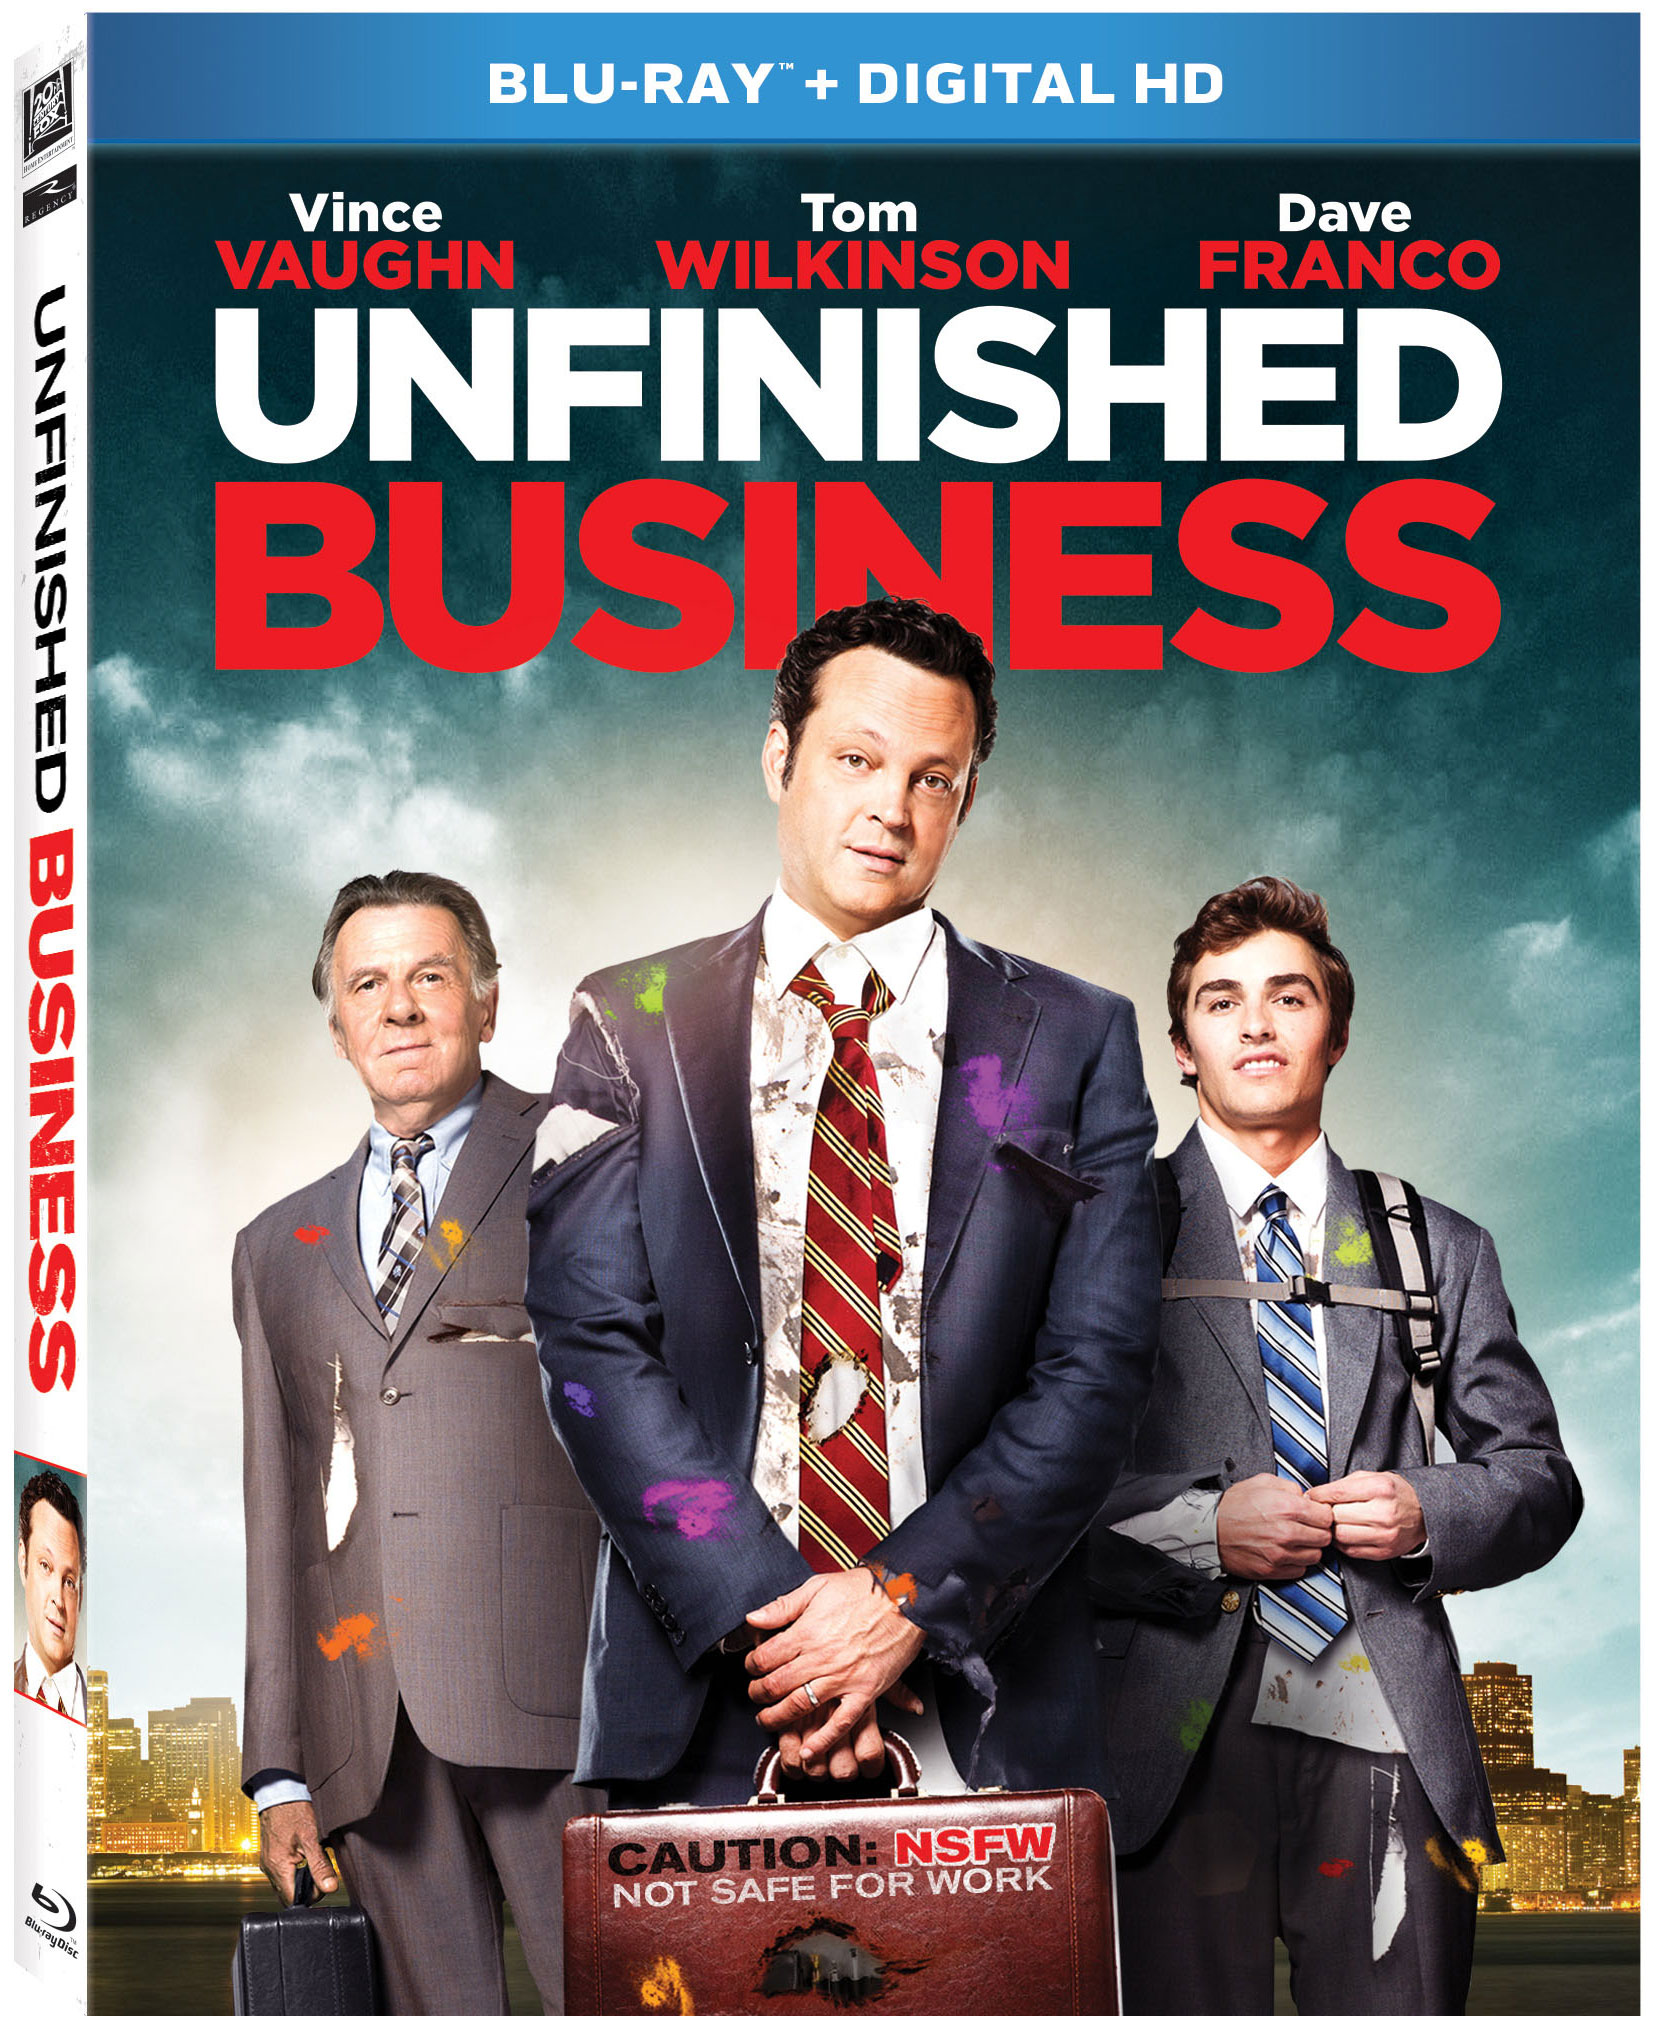 Lucifer Season 4 Release Date: Unfinished Business Starring Vince Vaughn Blu-ray, DVD And